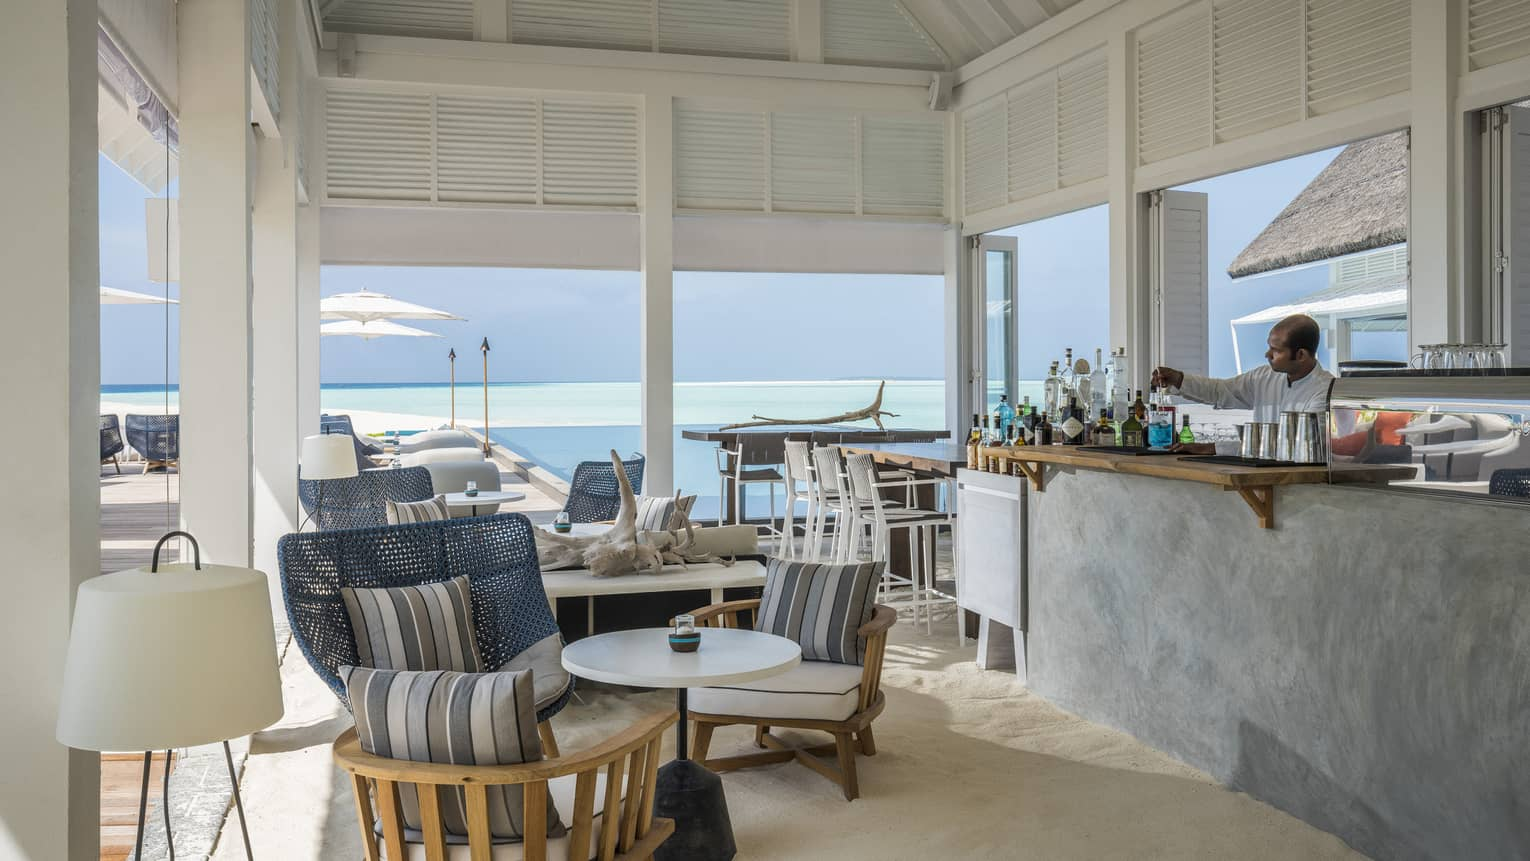 A comfortable, oceanside bar at the Blu Beach Club with plush chairs and a variety of cocktail selections